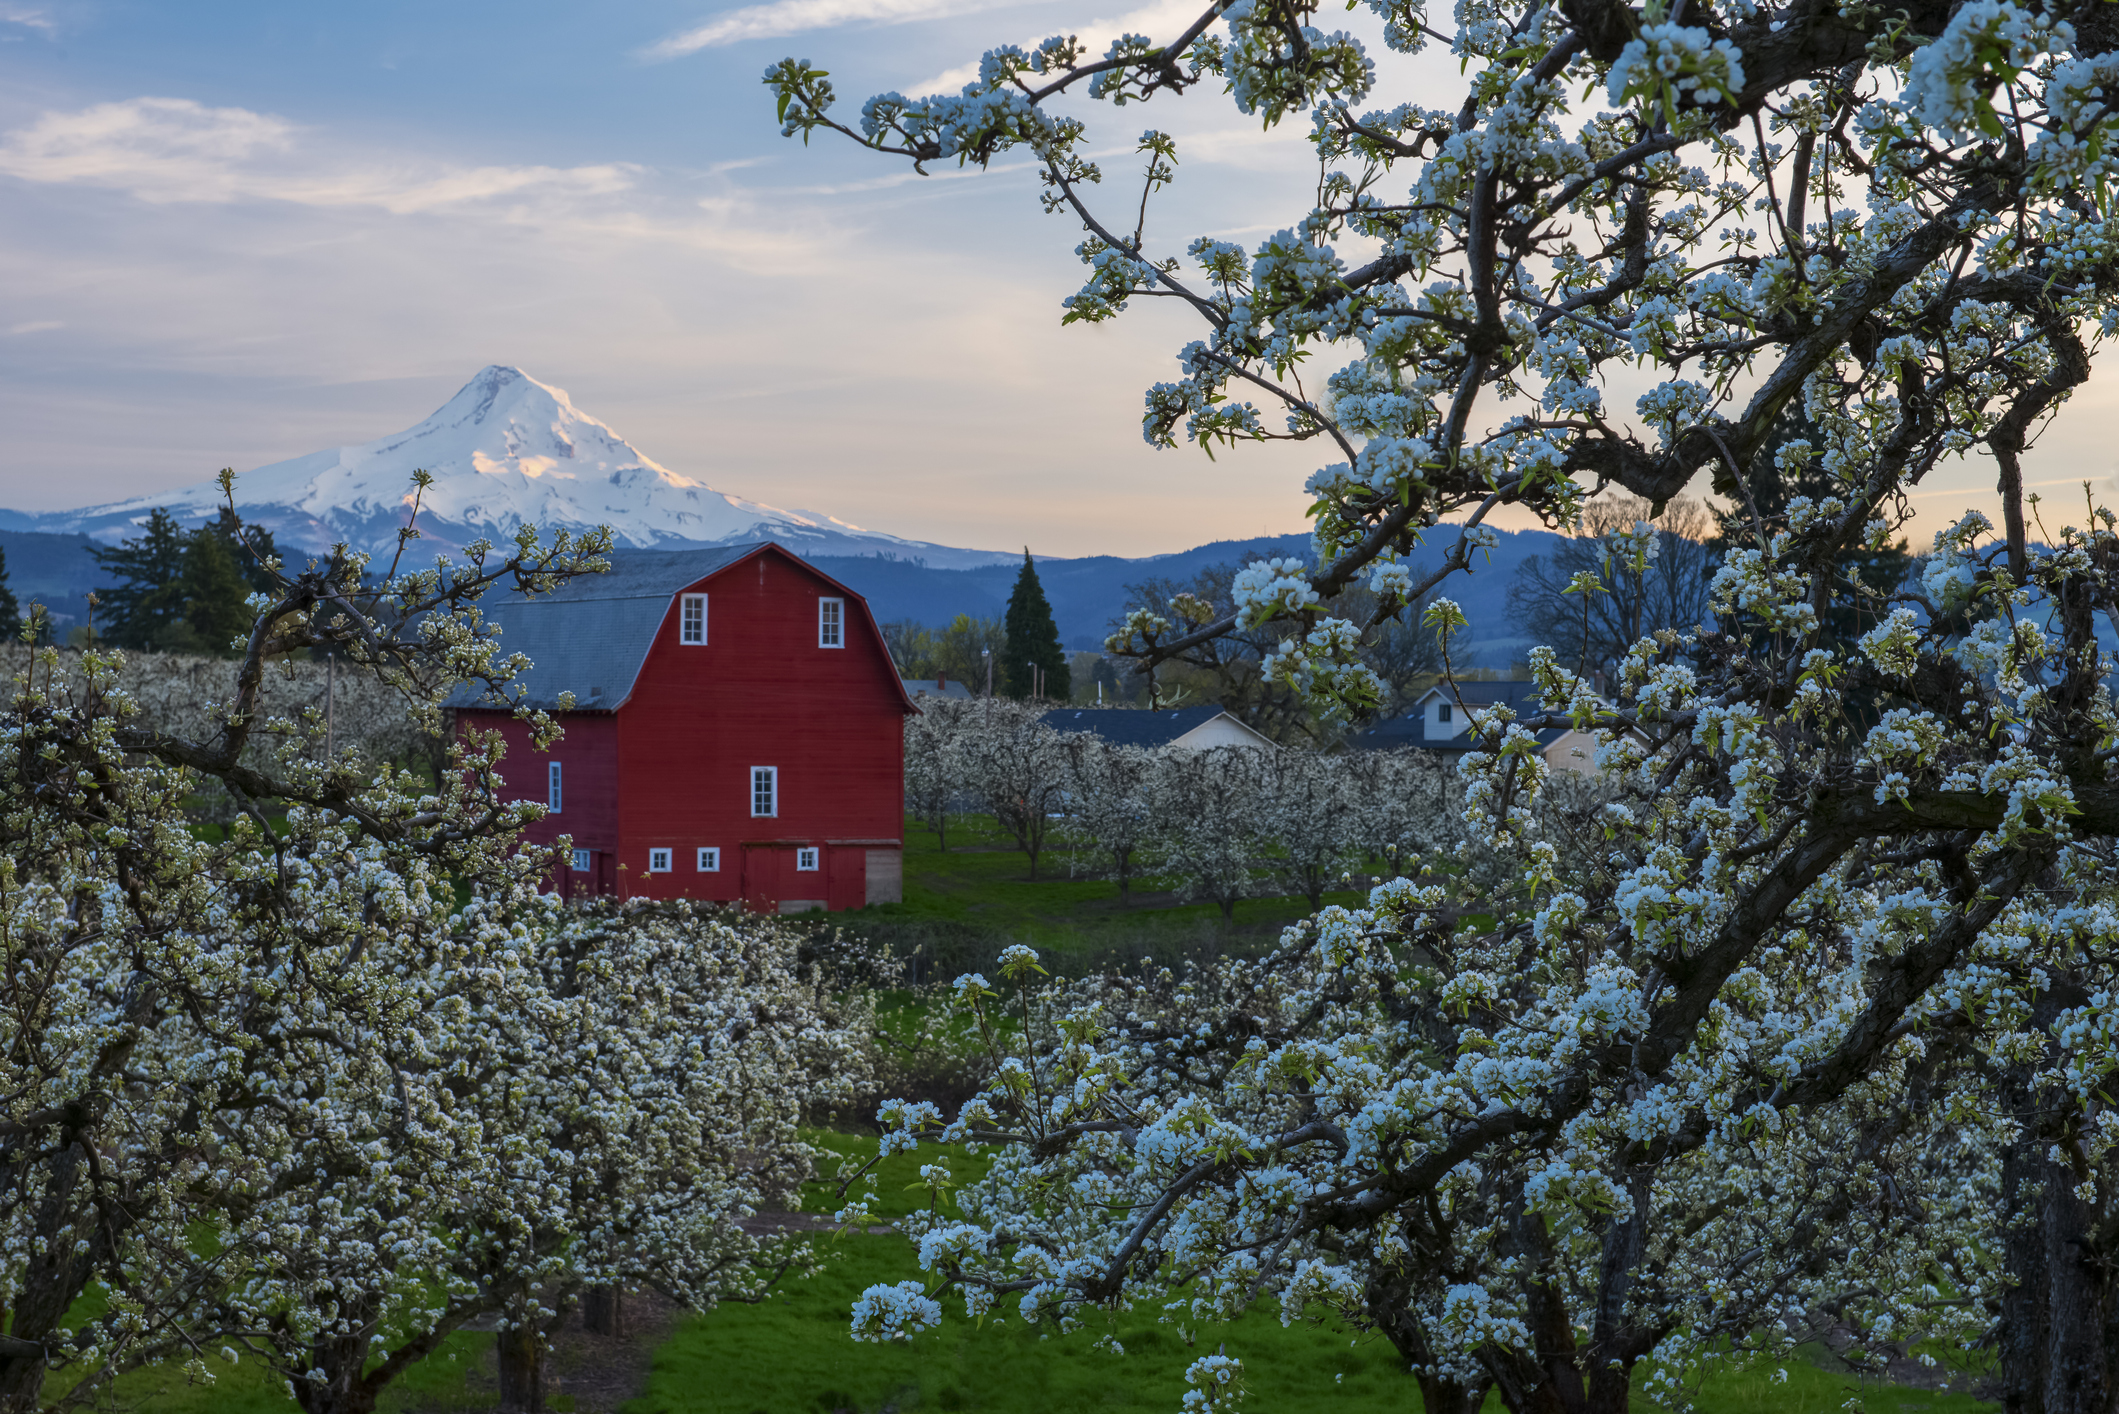 White blooming flowers on tree in focus with red barn and snow capped mountain